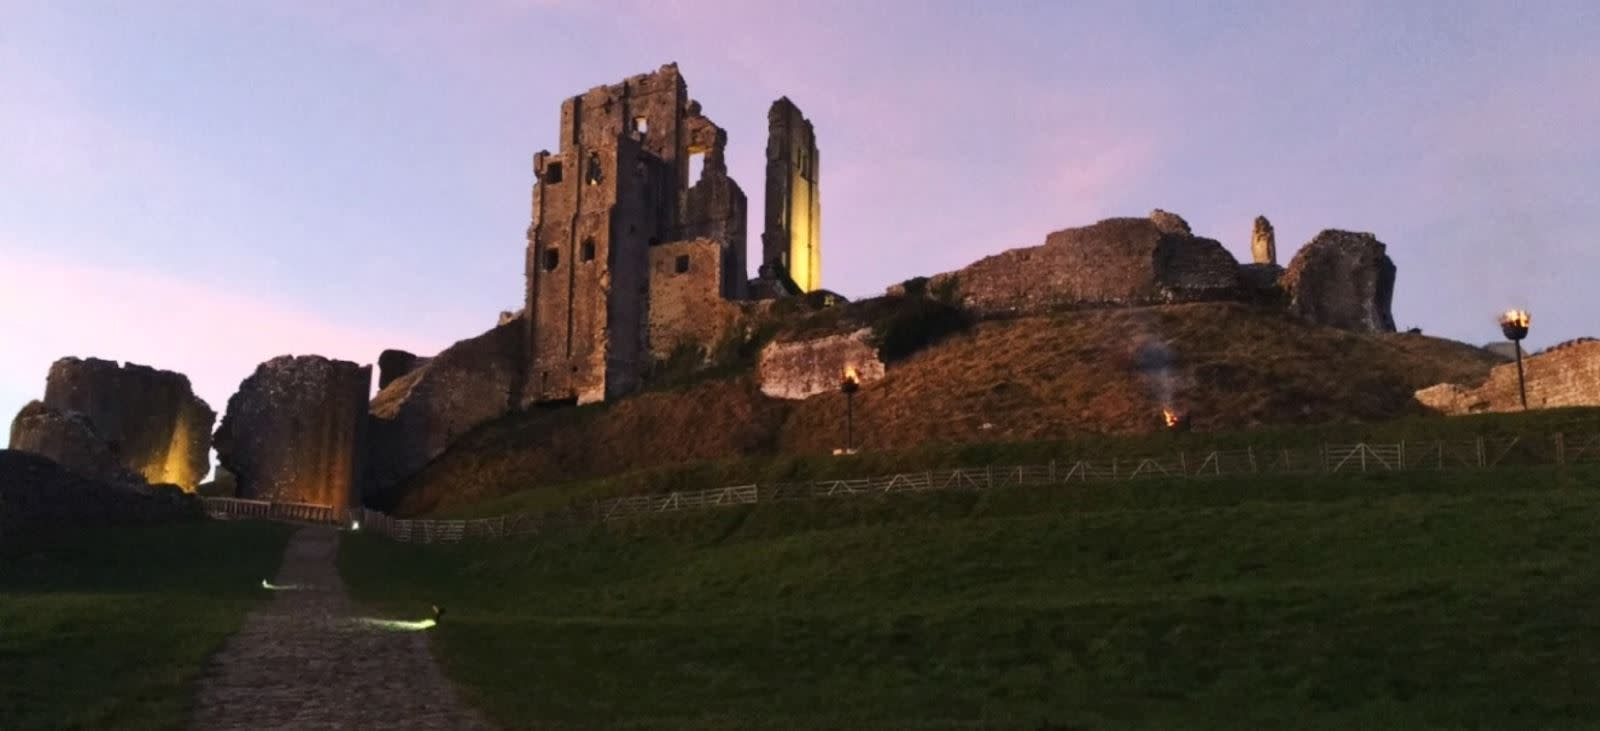 A pink sky blooms as the sun sets behind the romantic ruins of Corfe Castle